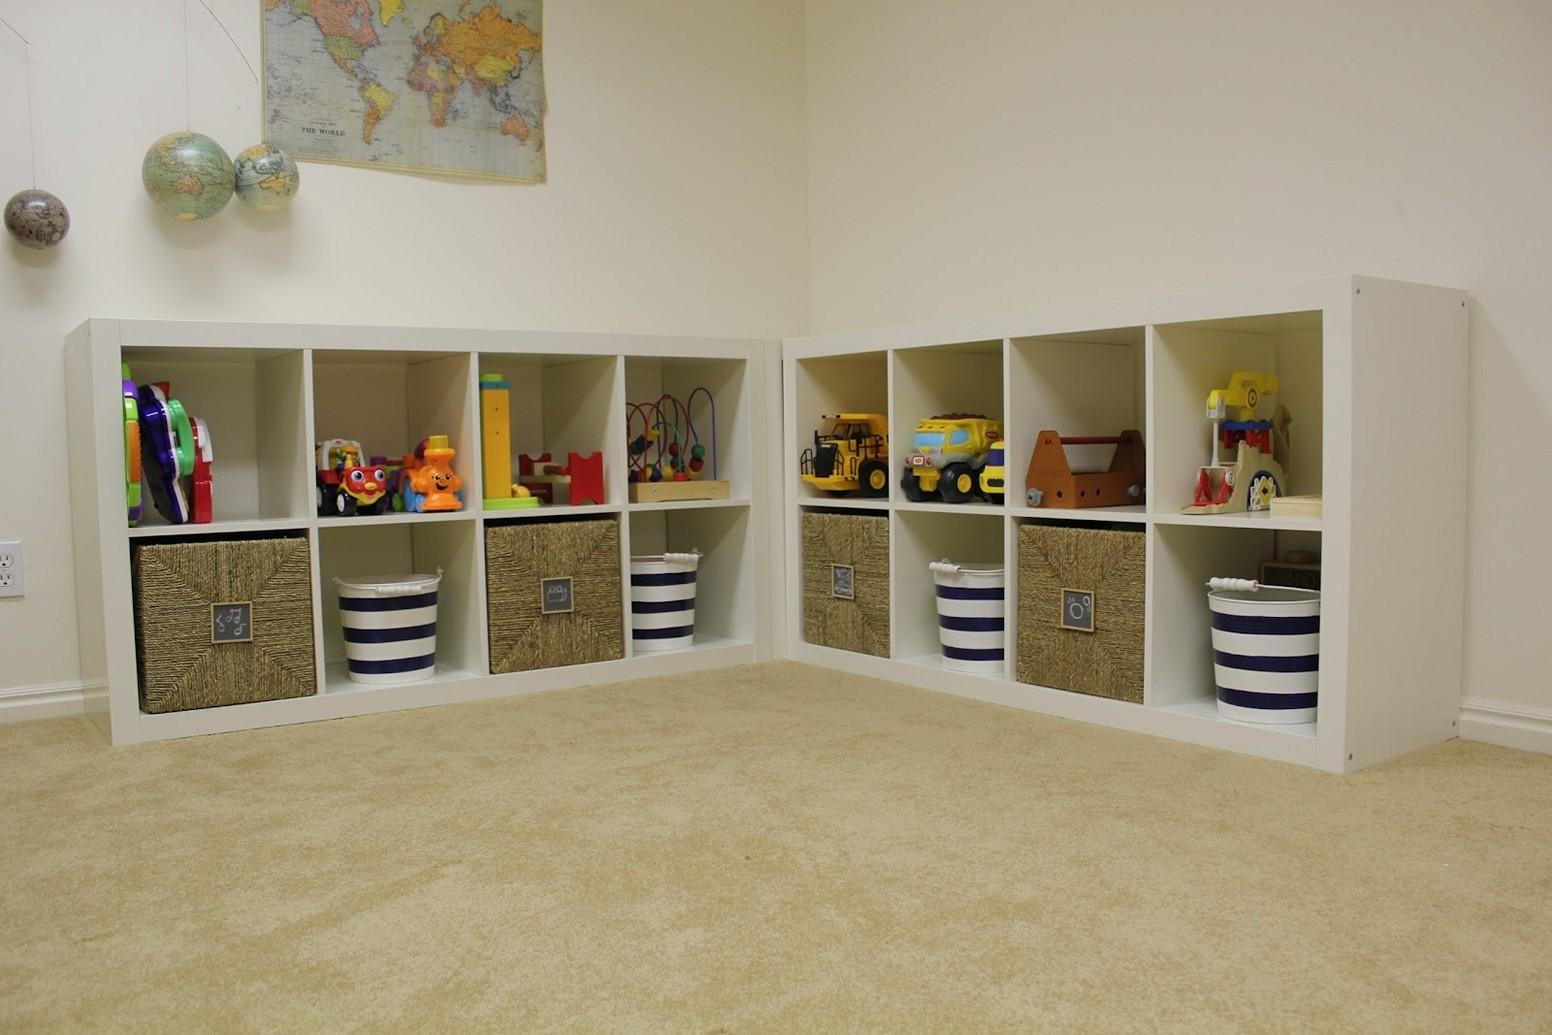 Kid Friendly Playroom Storage Ideas Could Implement